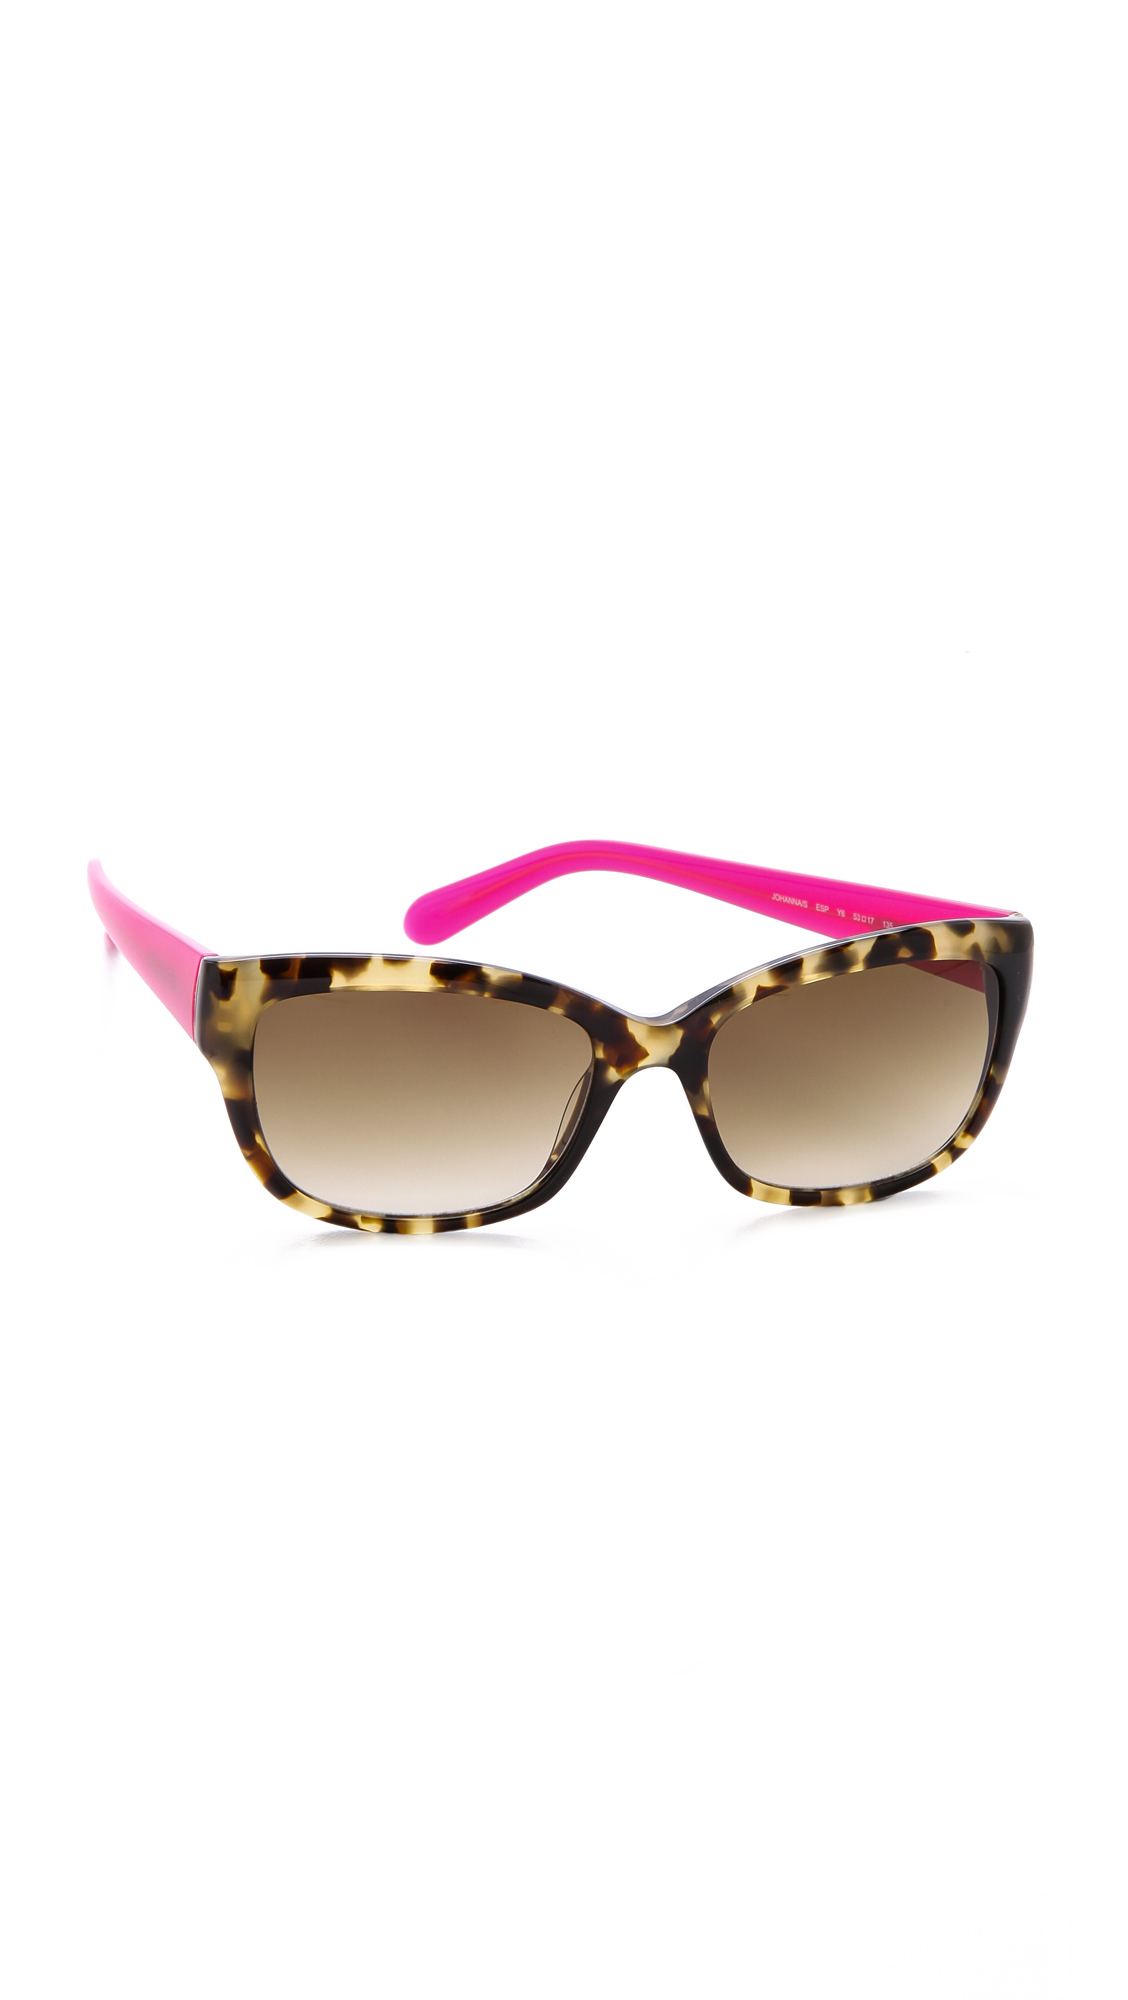 bc3f905485 Lyst - Kate Spade Johanna Sunglasses in Pink